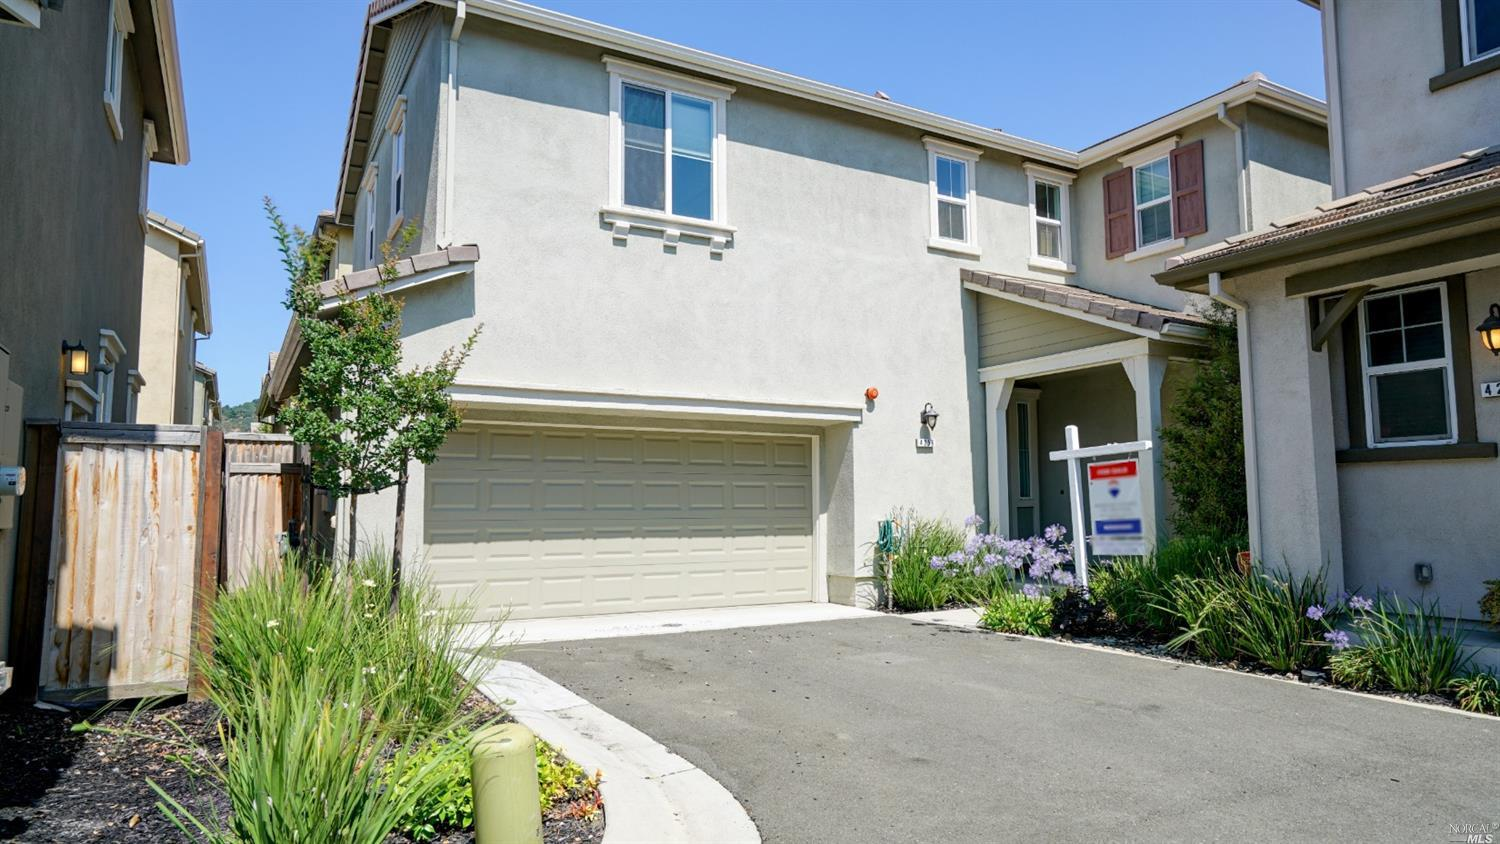 Gorgeous Bradbury Park 2-story w/over $80K in upgrades. This beautiful 2380 sq ft 3-bedroom (possibl